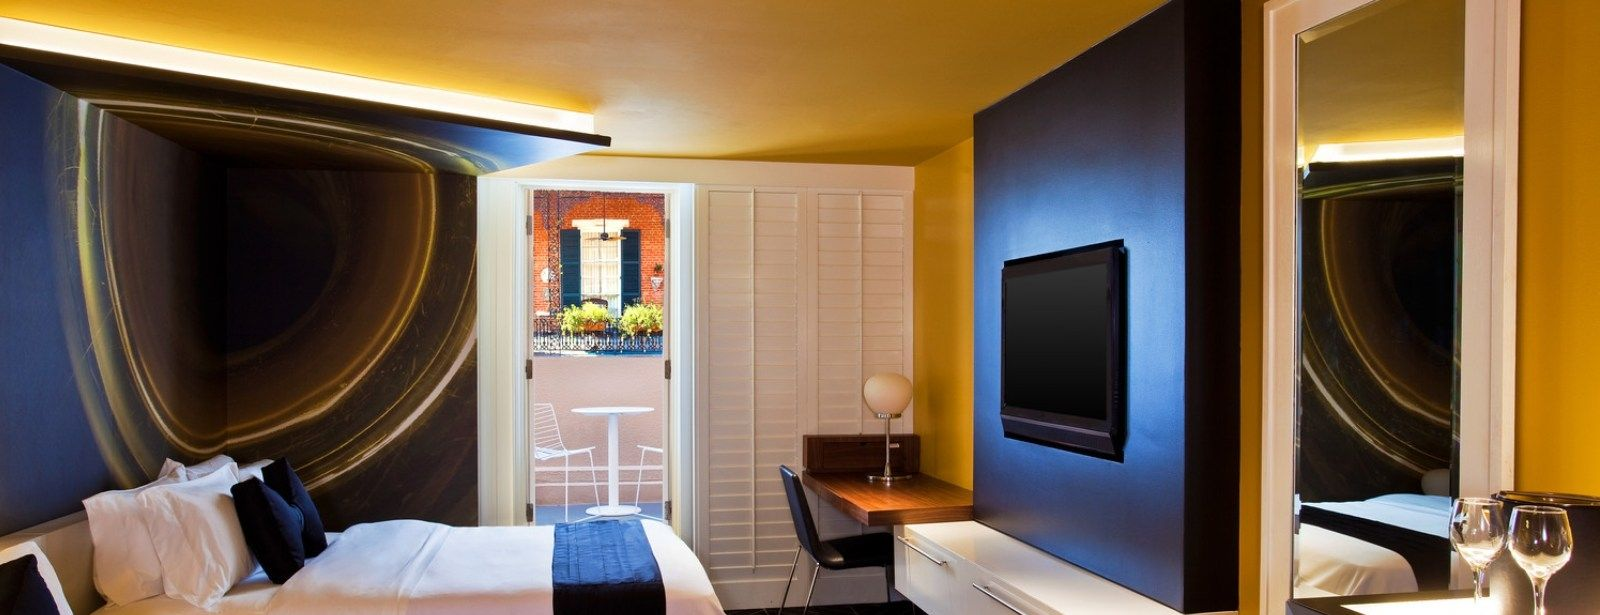 French Quarter Guest Rooms